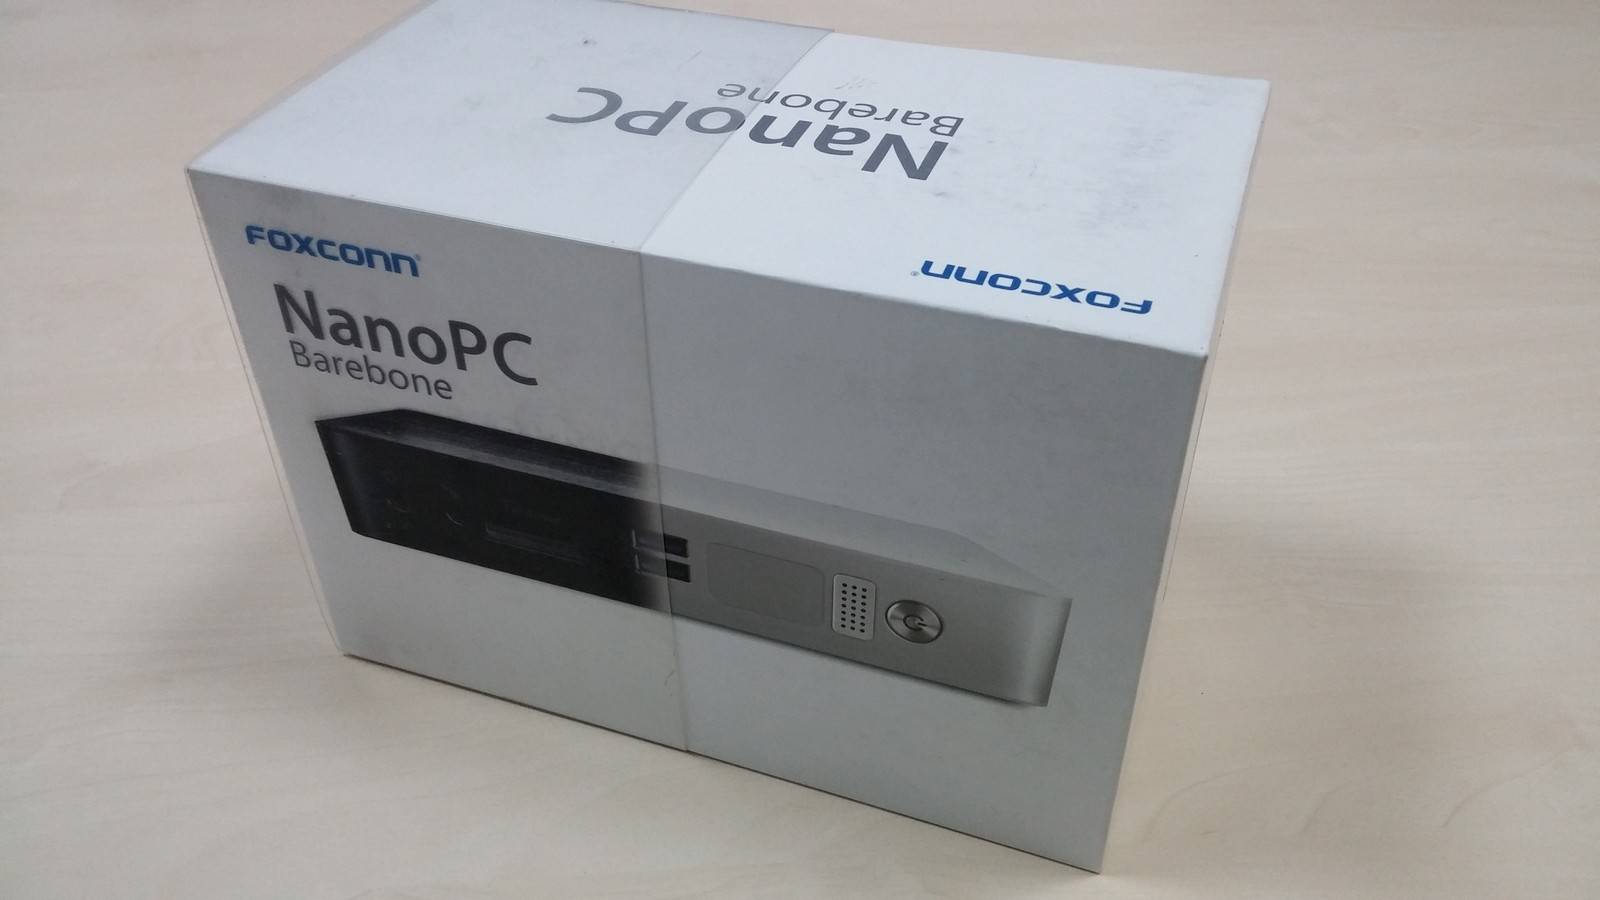 Foxconn NanoPC Barebone AT-7300 Black